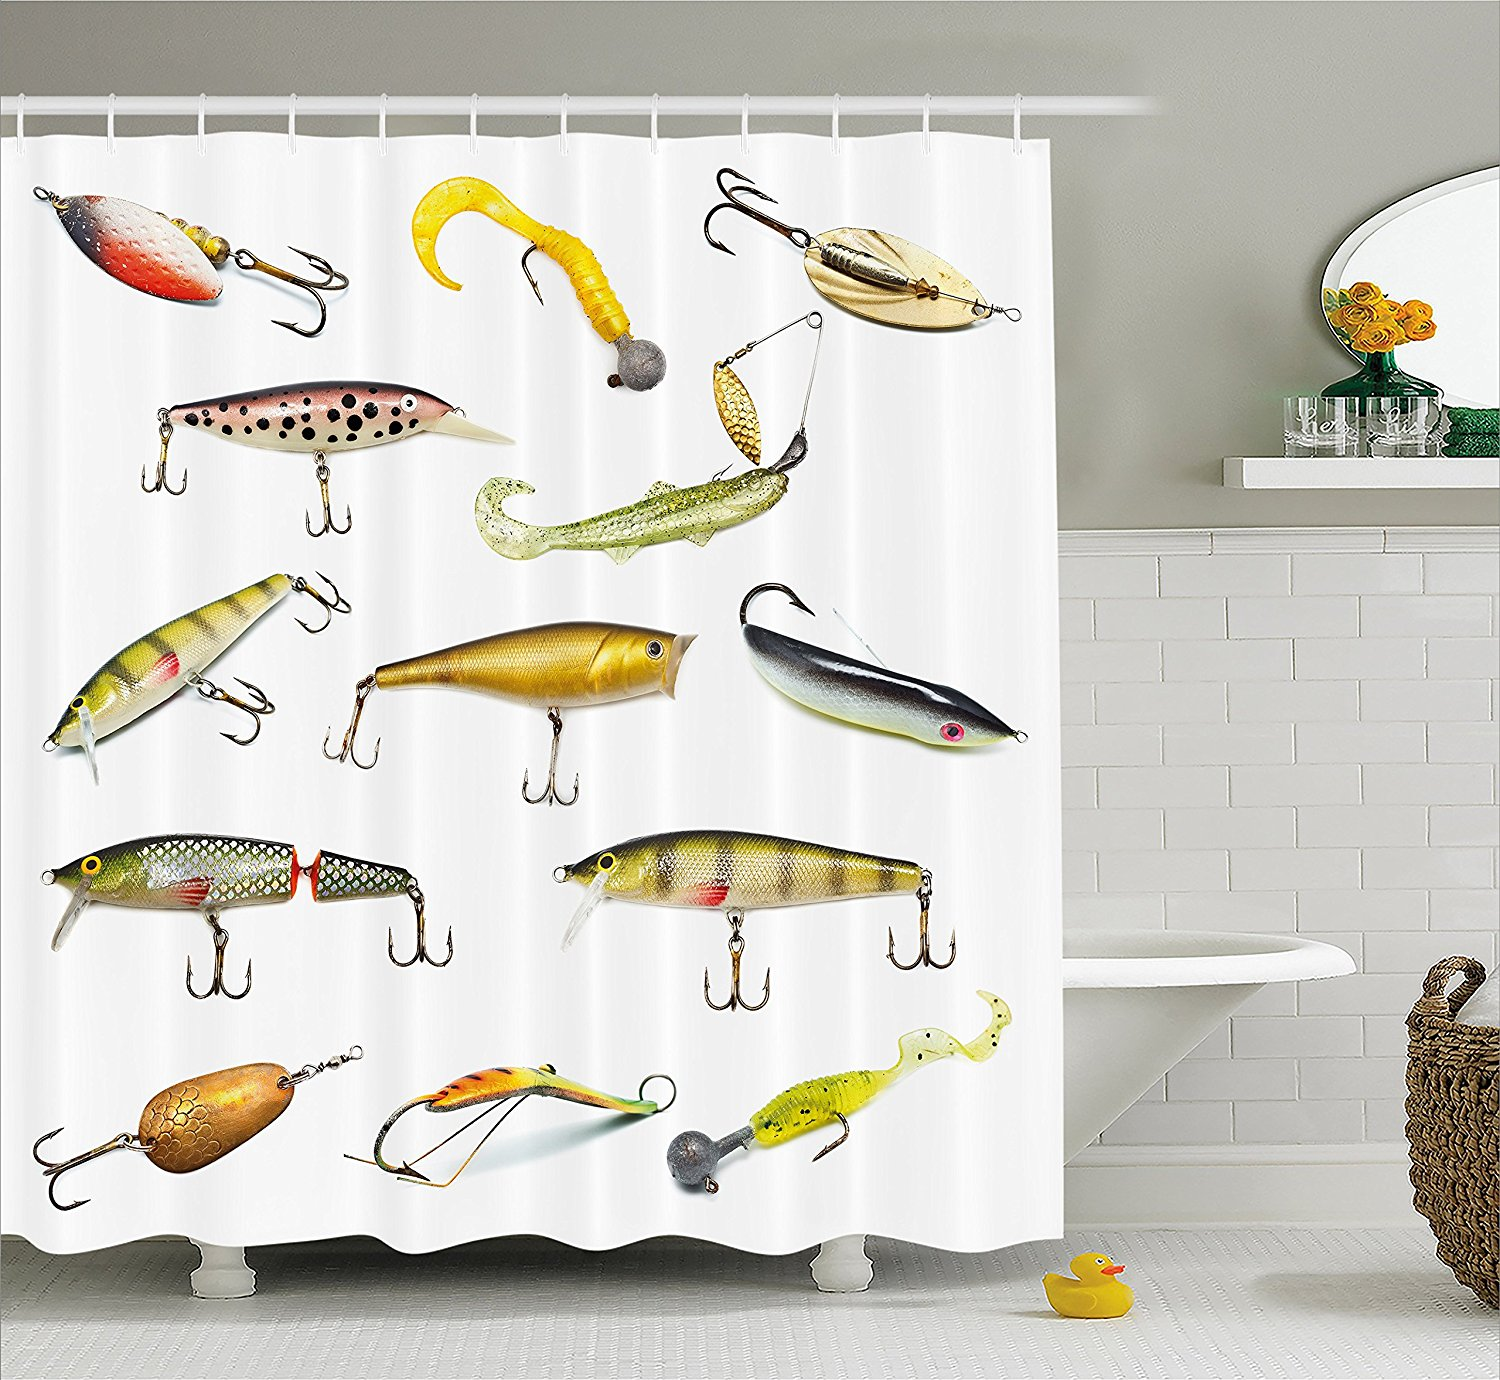 Fishing Decor Shower Curtain Fathers Day Idea Tackle Bait For Spearing Trapping Catching Aquatic Animals